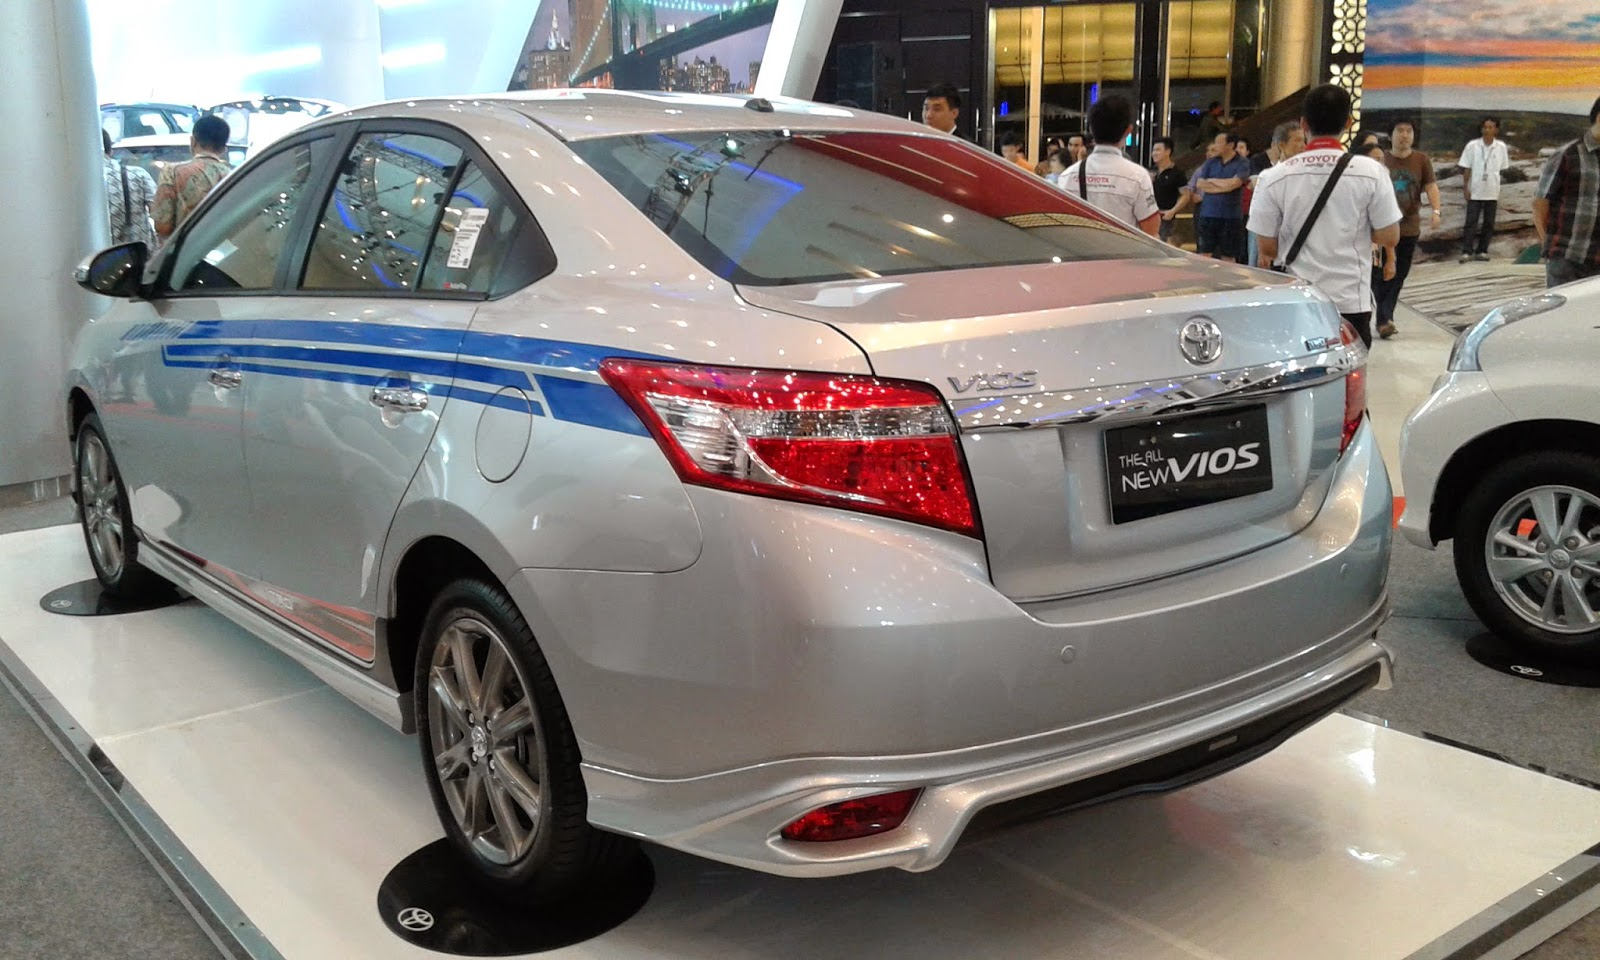 All New Vios TRD